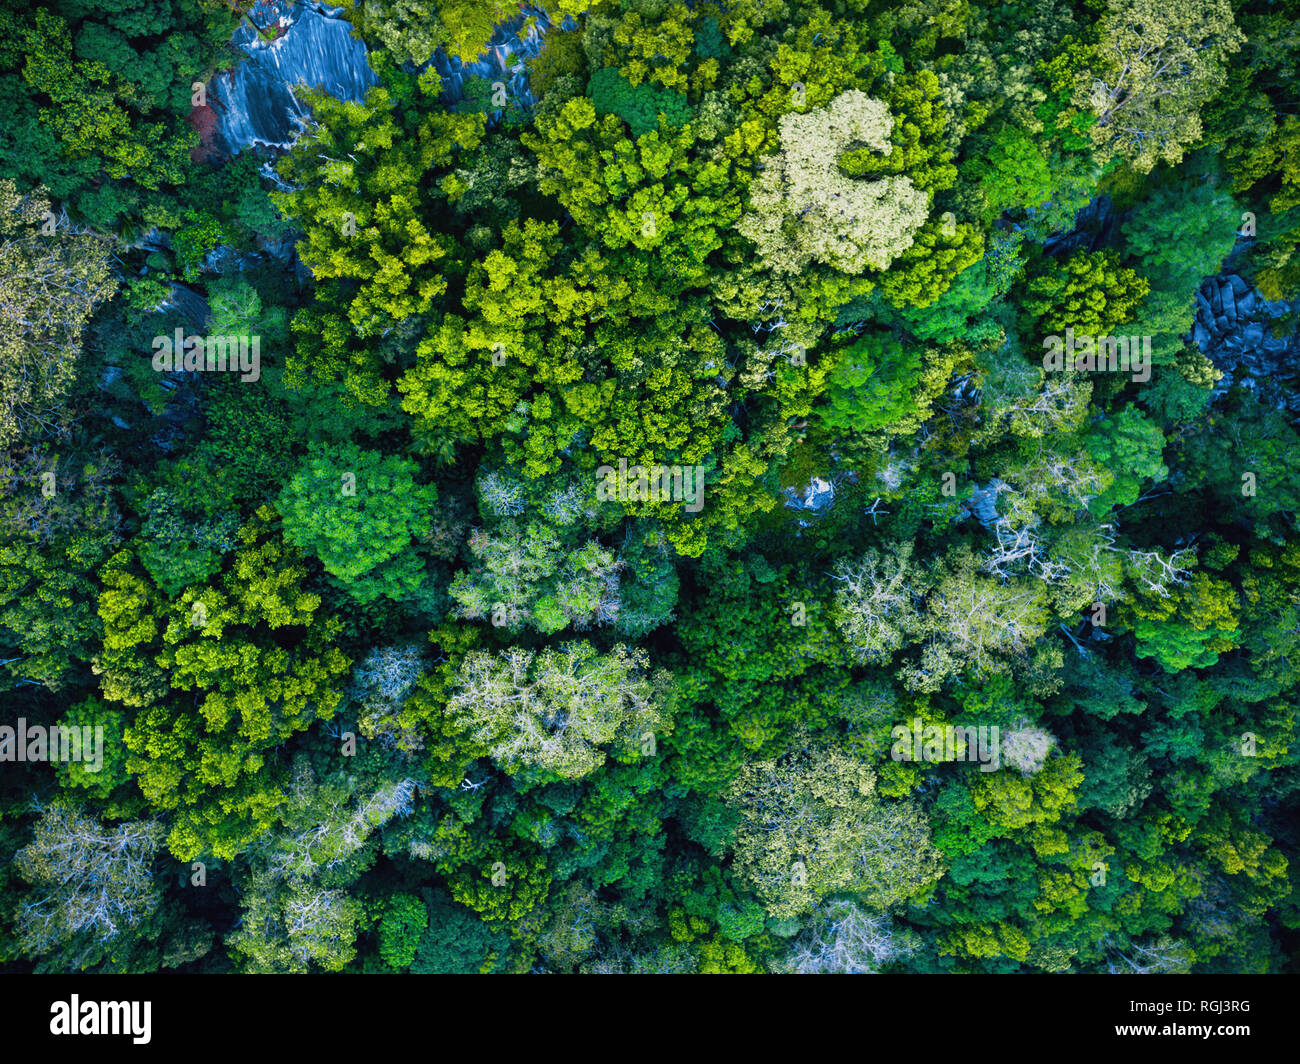 Seychelles, La Digue, Aerial view of rain forest - Stock Image